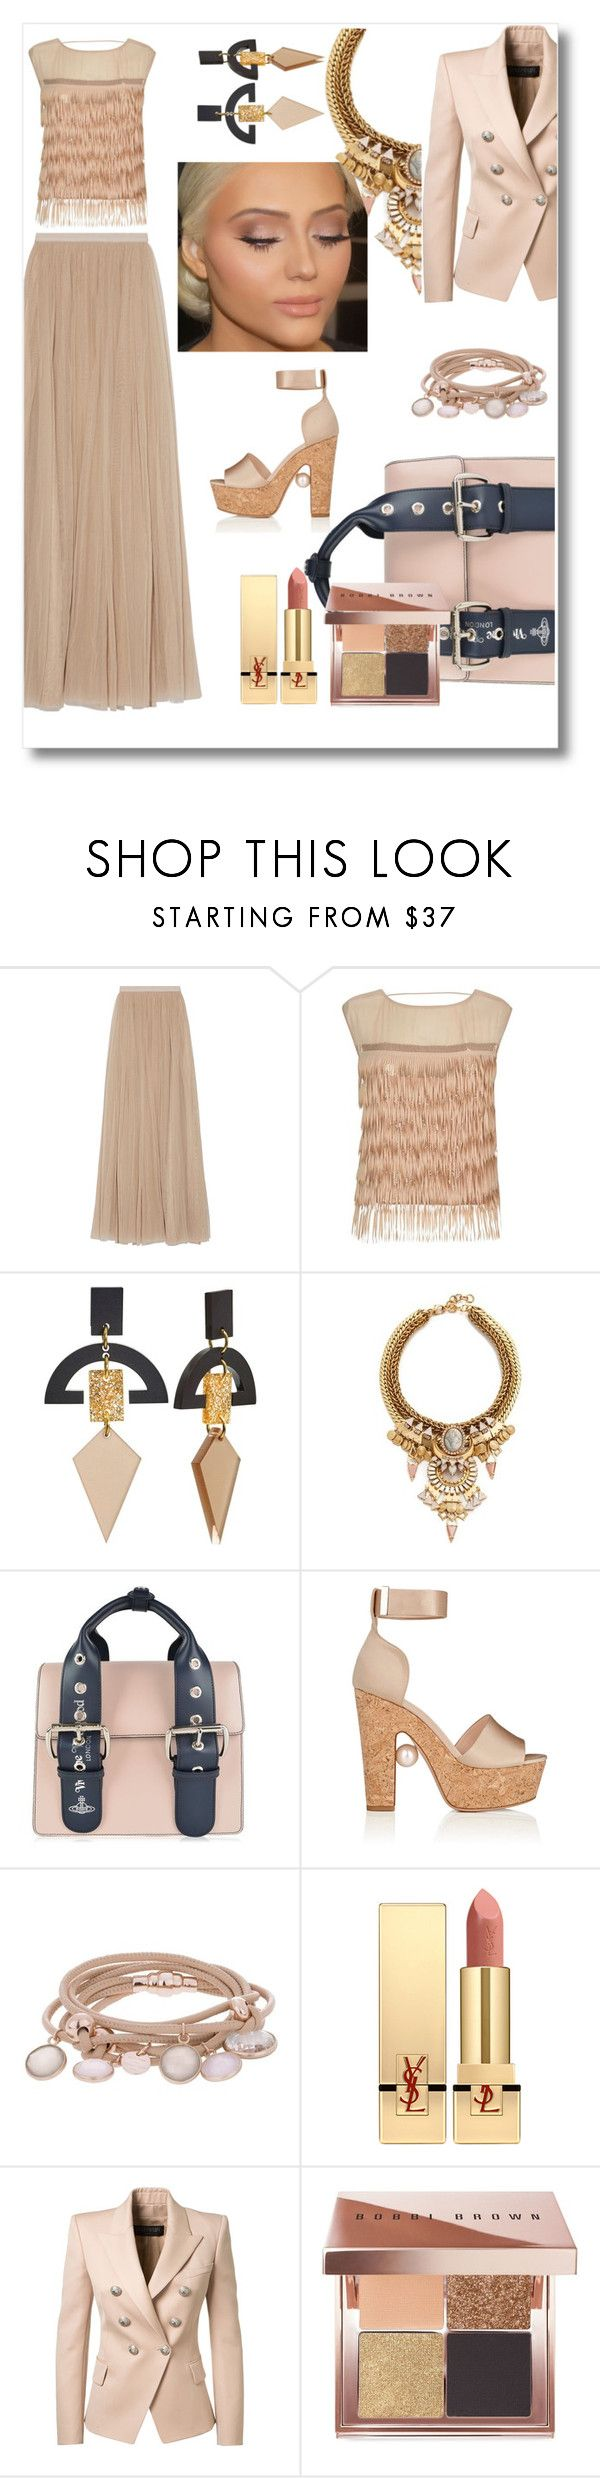 """monochrome"" by morag667 ❤ liked on Polyvore featuring Needle & Thread, Patrizia Pepe, Toolally, Elizabeth Cole, Vivienne Westwood, Nicholas Kirkwood, Marjana von Berlepsch, Yves Saint Laurent, Balmain and Bobbi Brown Cosmetics"